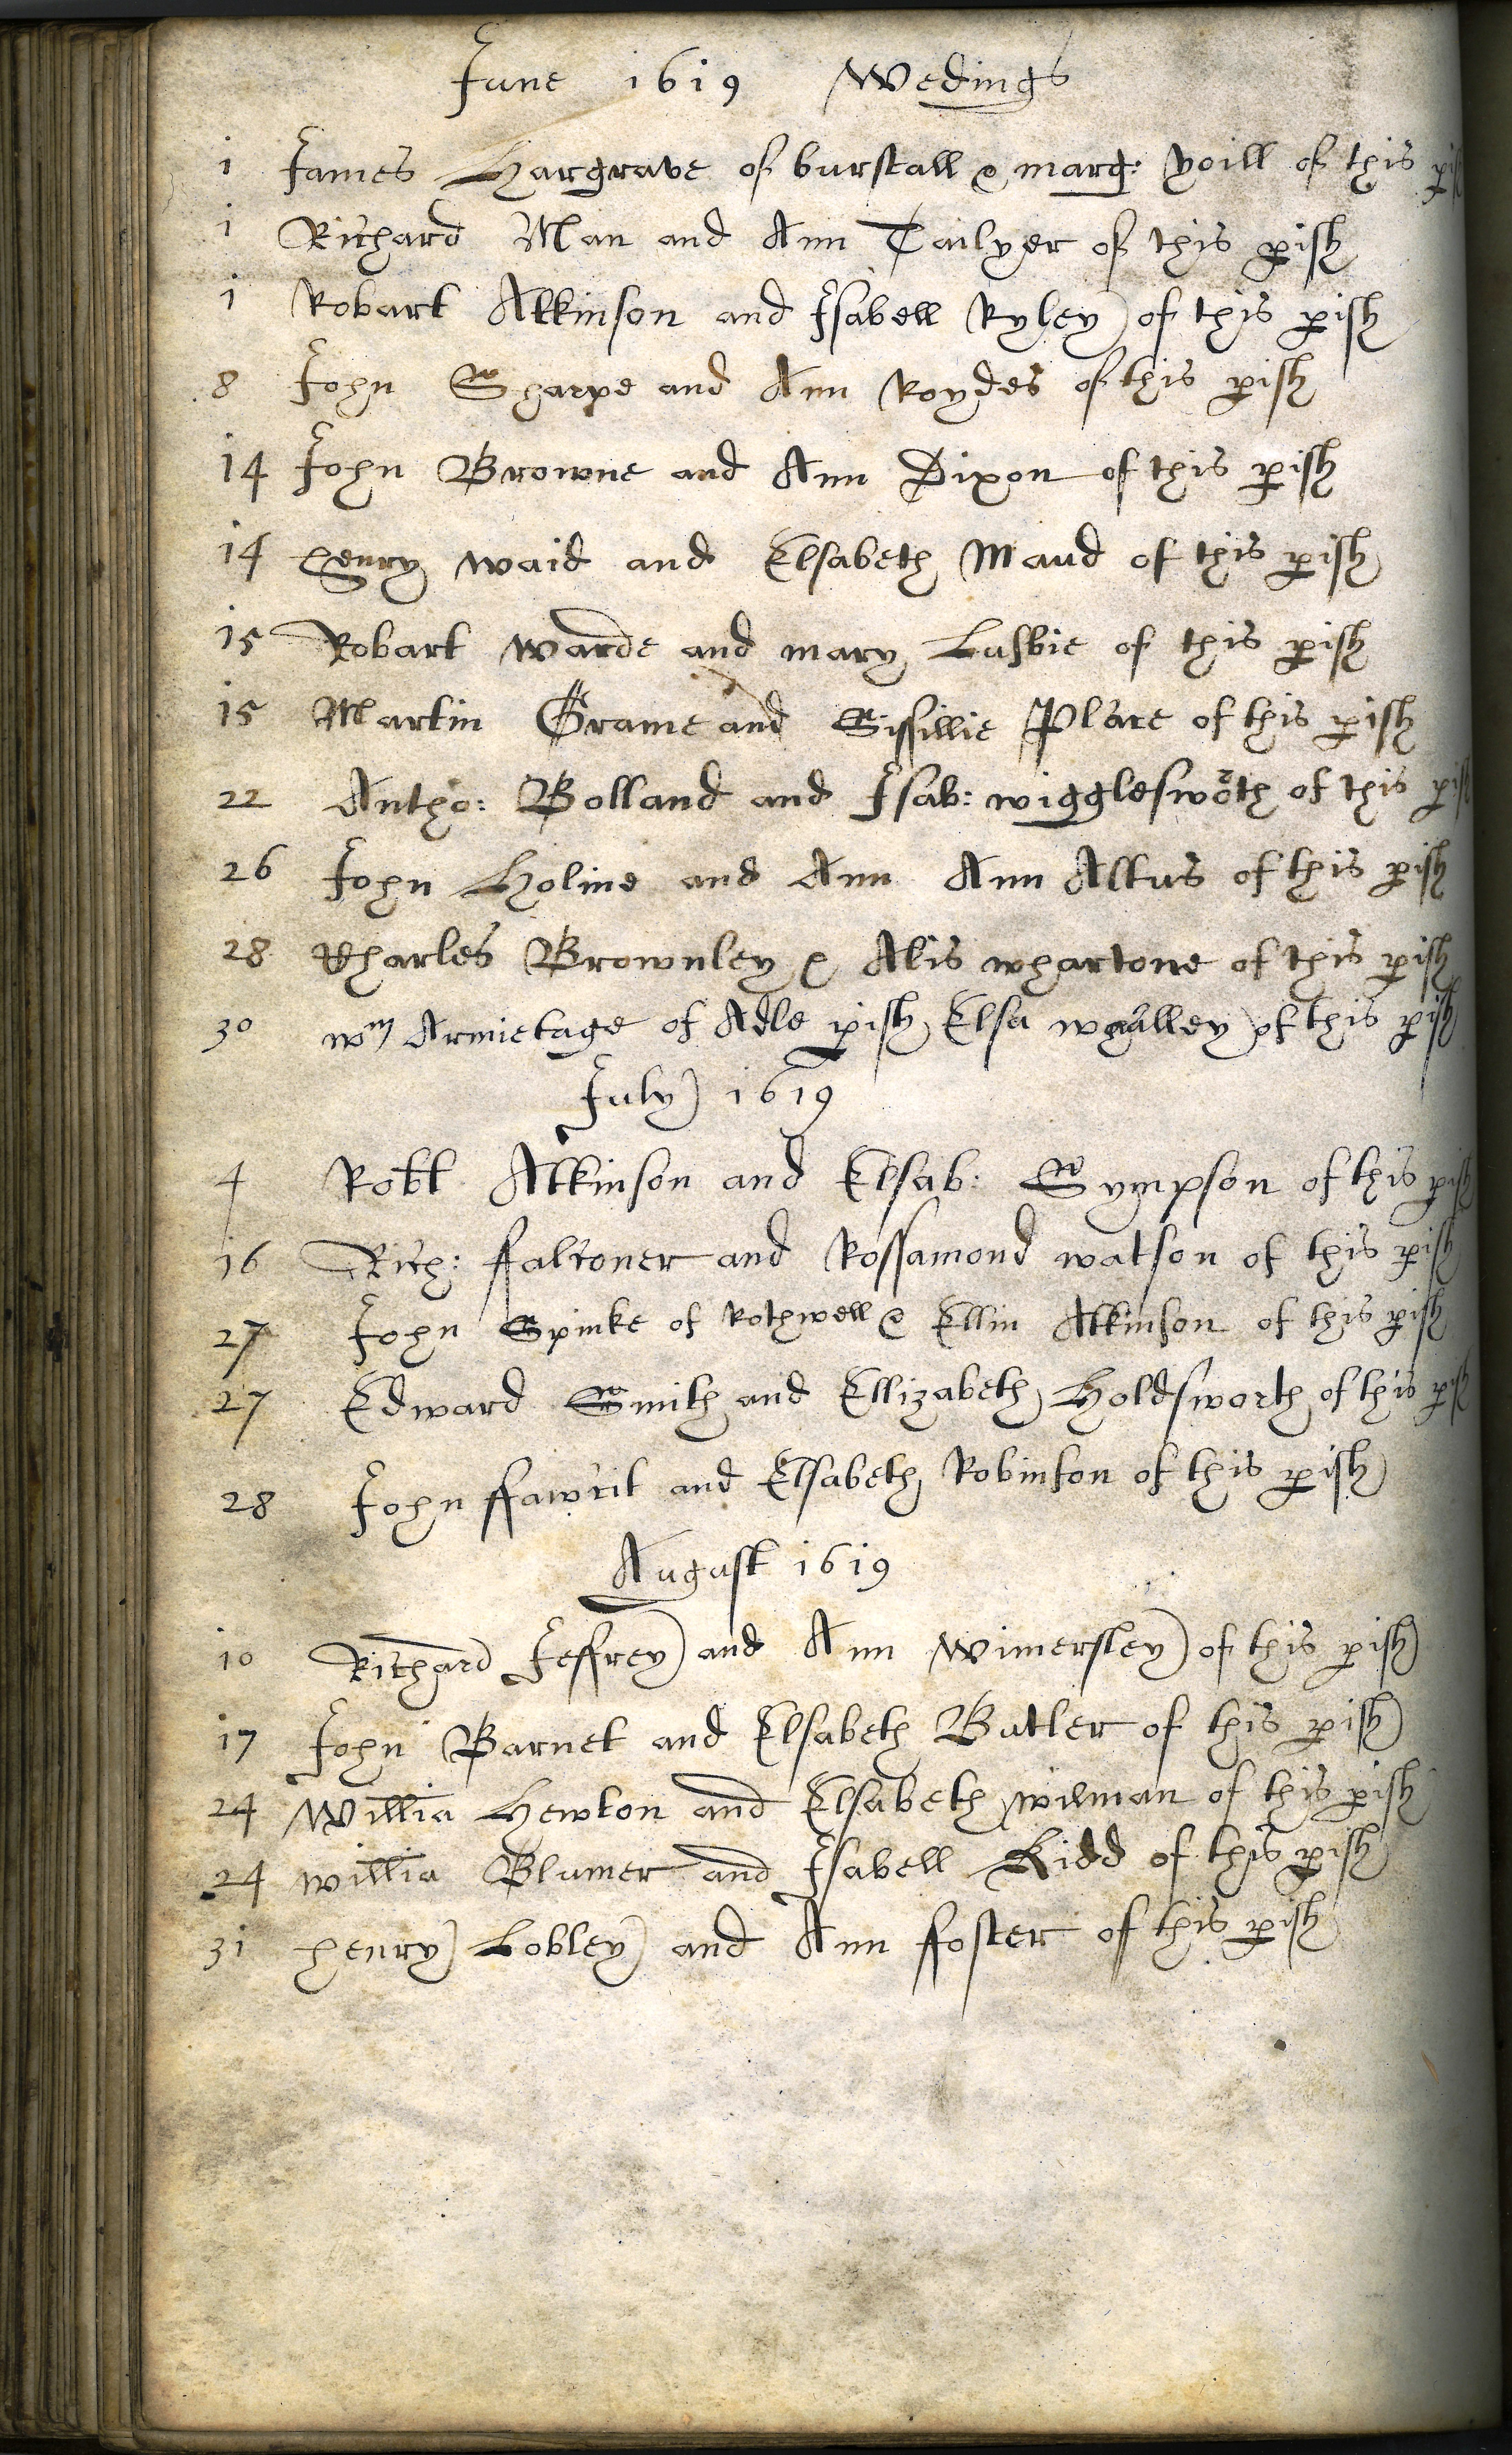 Page from Parish Register showing weddings at St Peter's Church, Leeds during 1619